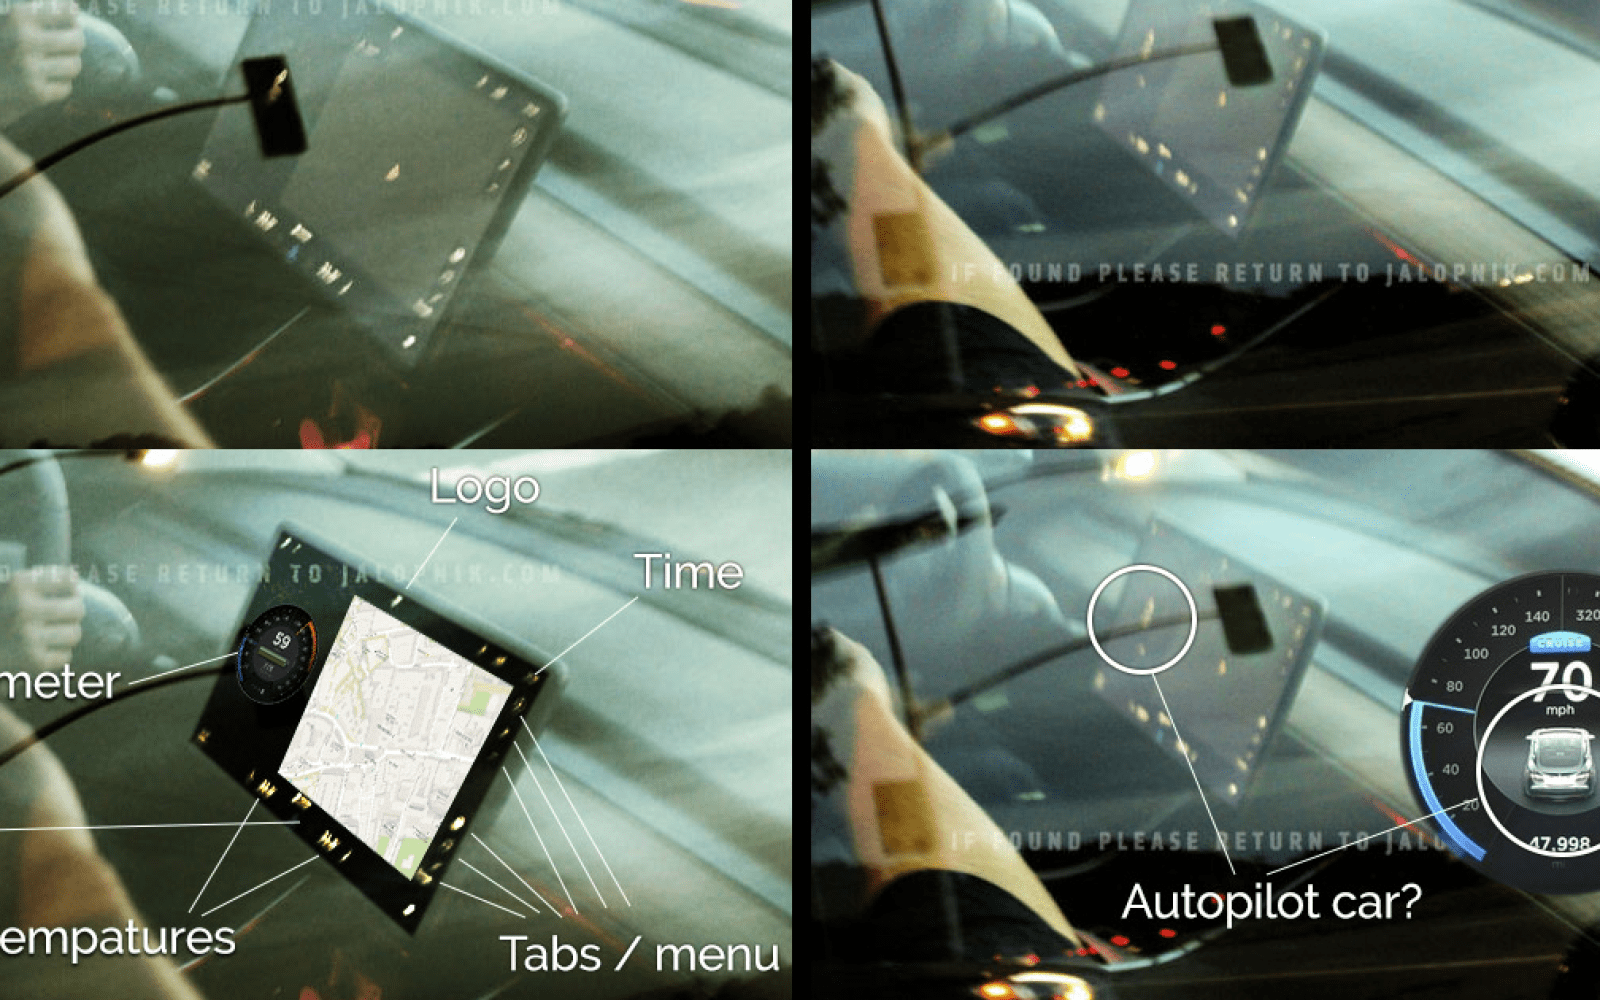 Tesla Model 3: decoding the release candidate's user interface on center screen